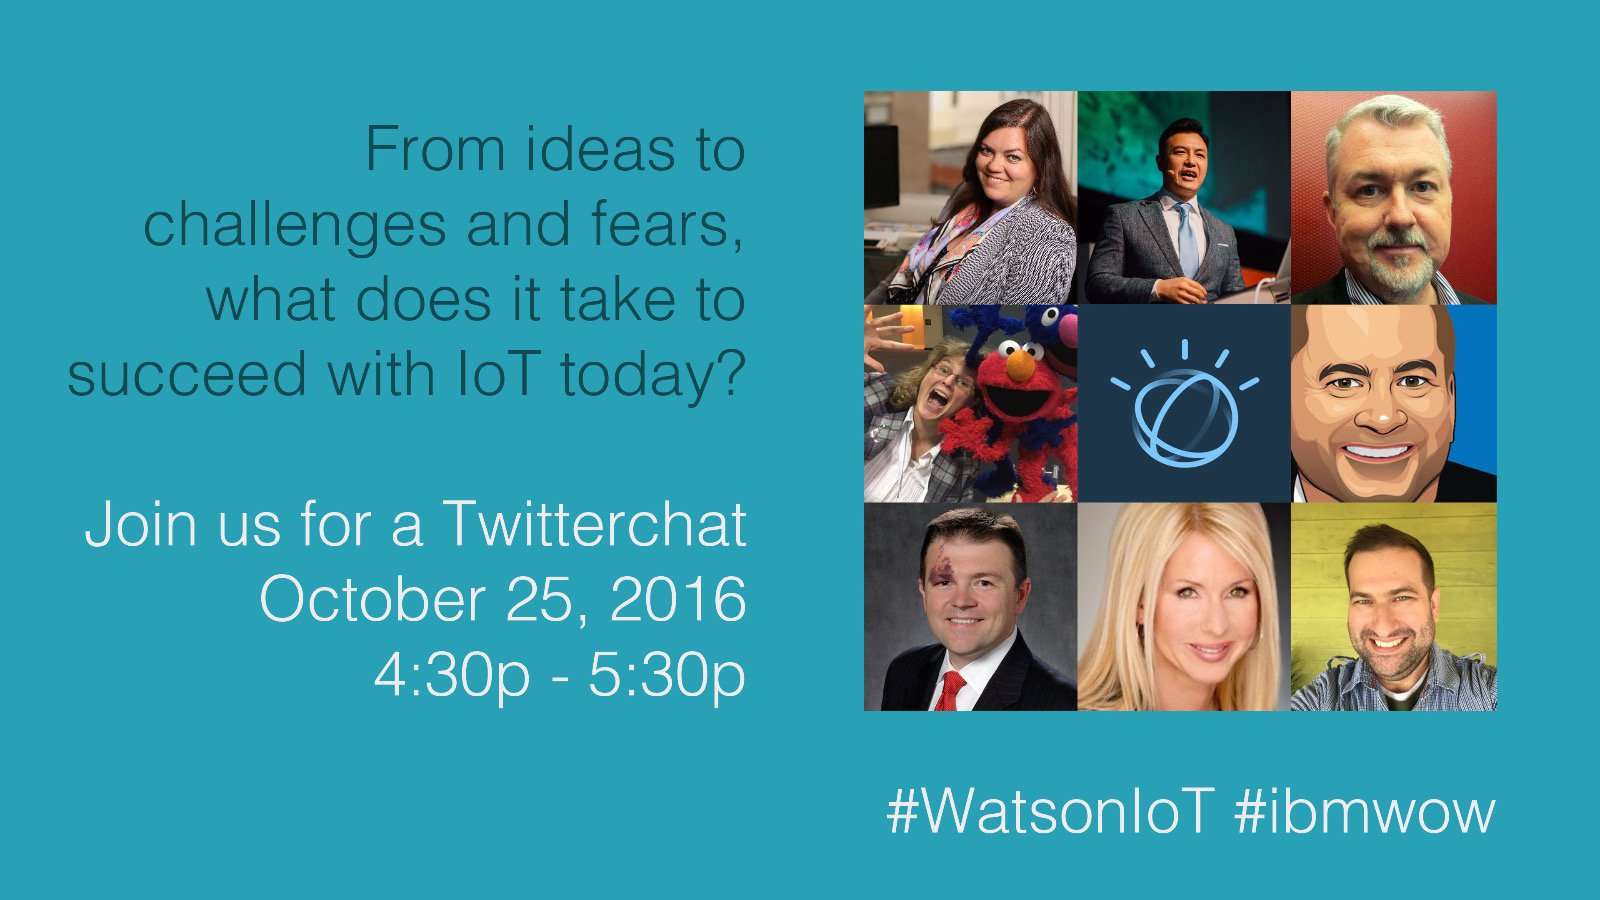 Right after the #ibmwow Internet of Things keynote, join the #IoT influencers for a chat with hashtag #WatsonIoT at 4:30 PM PT https://t.co/pxoJVqkwyD